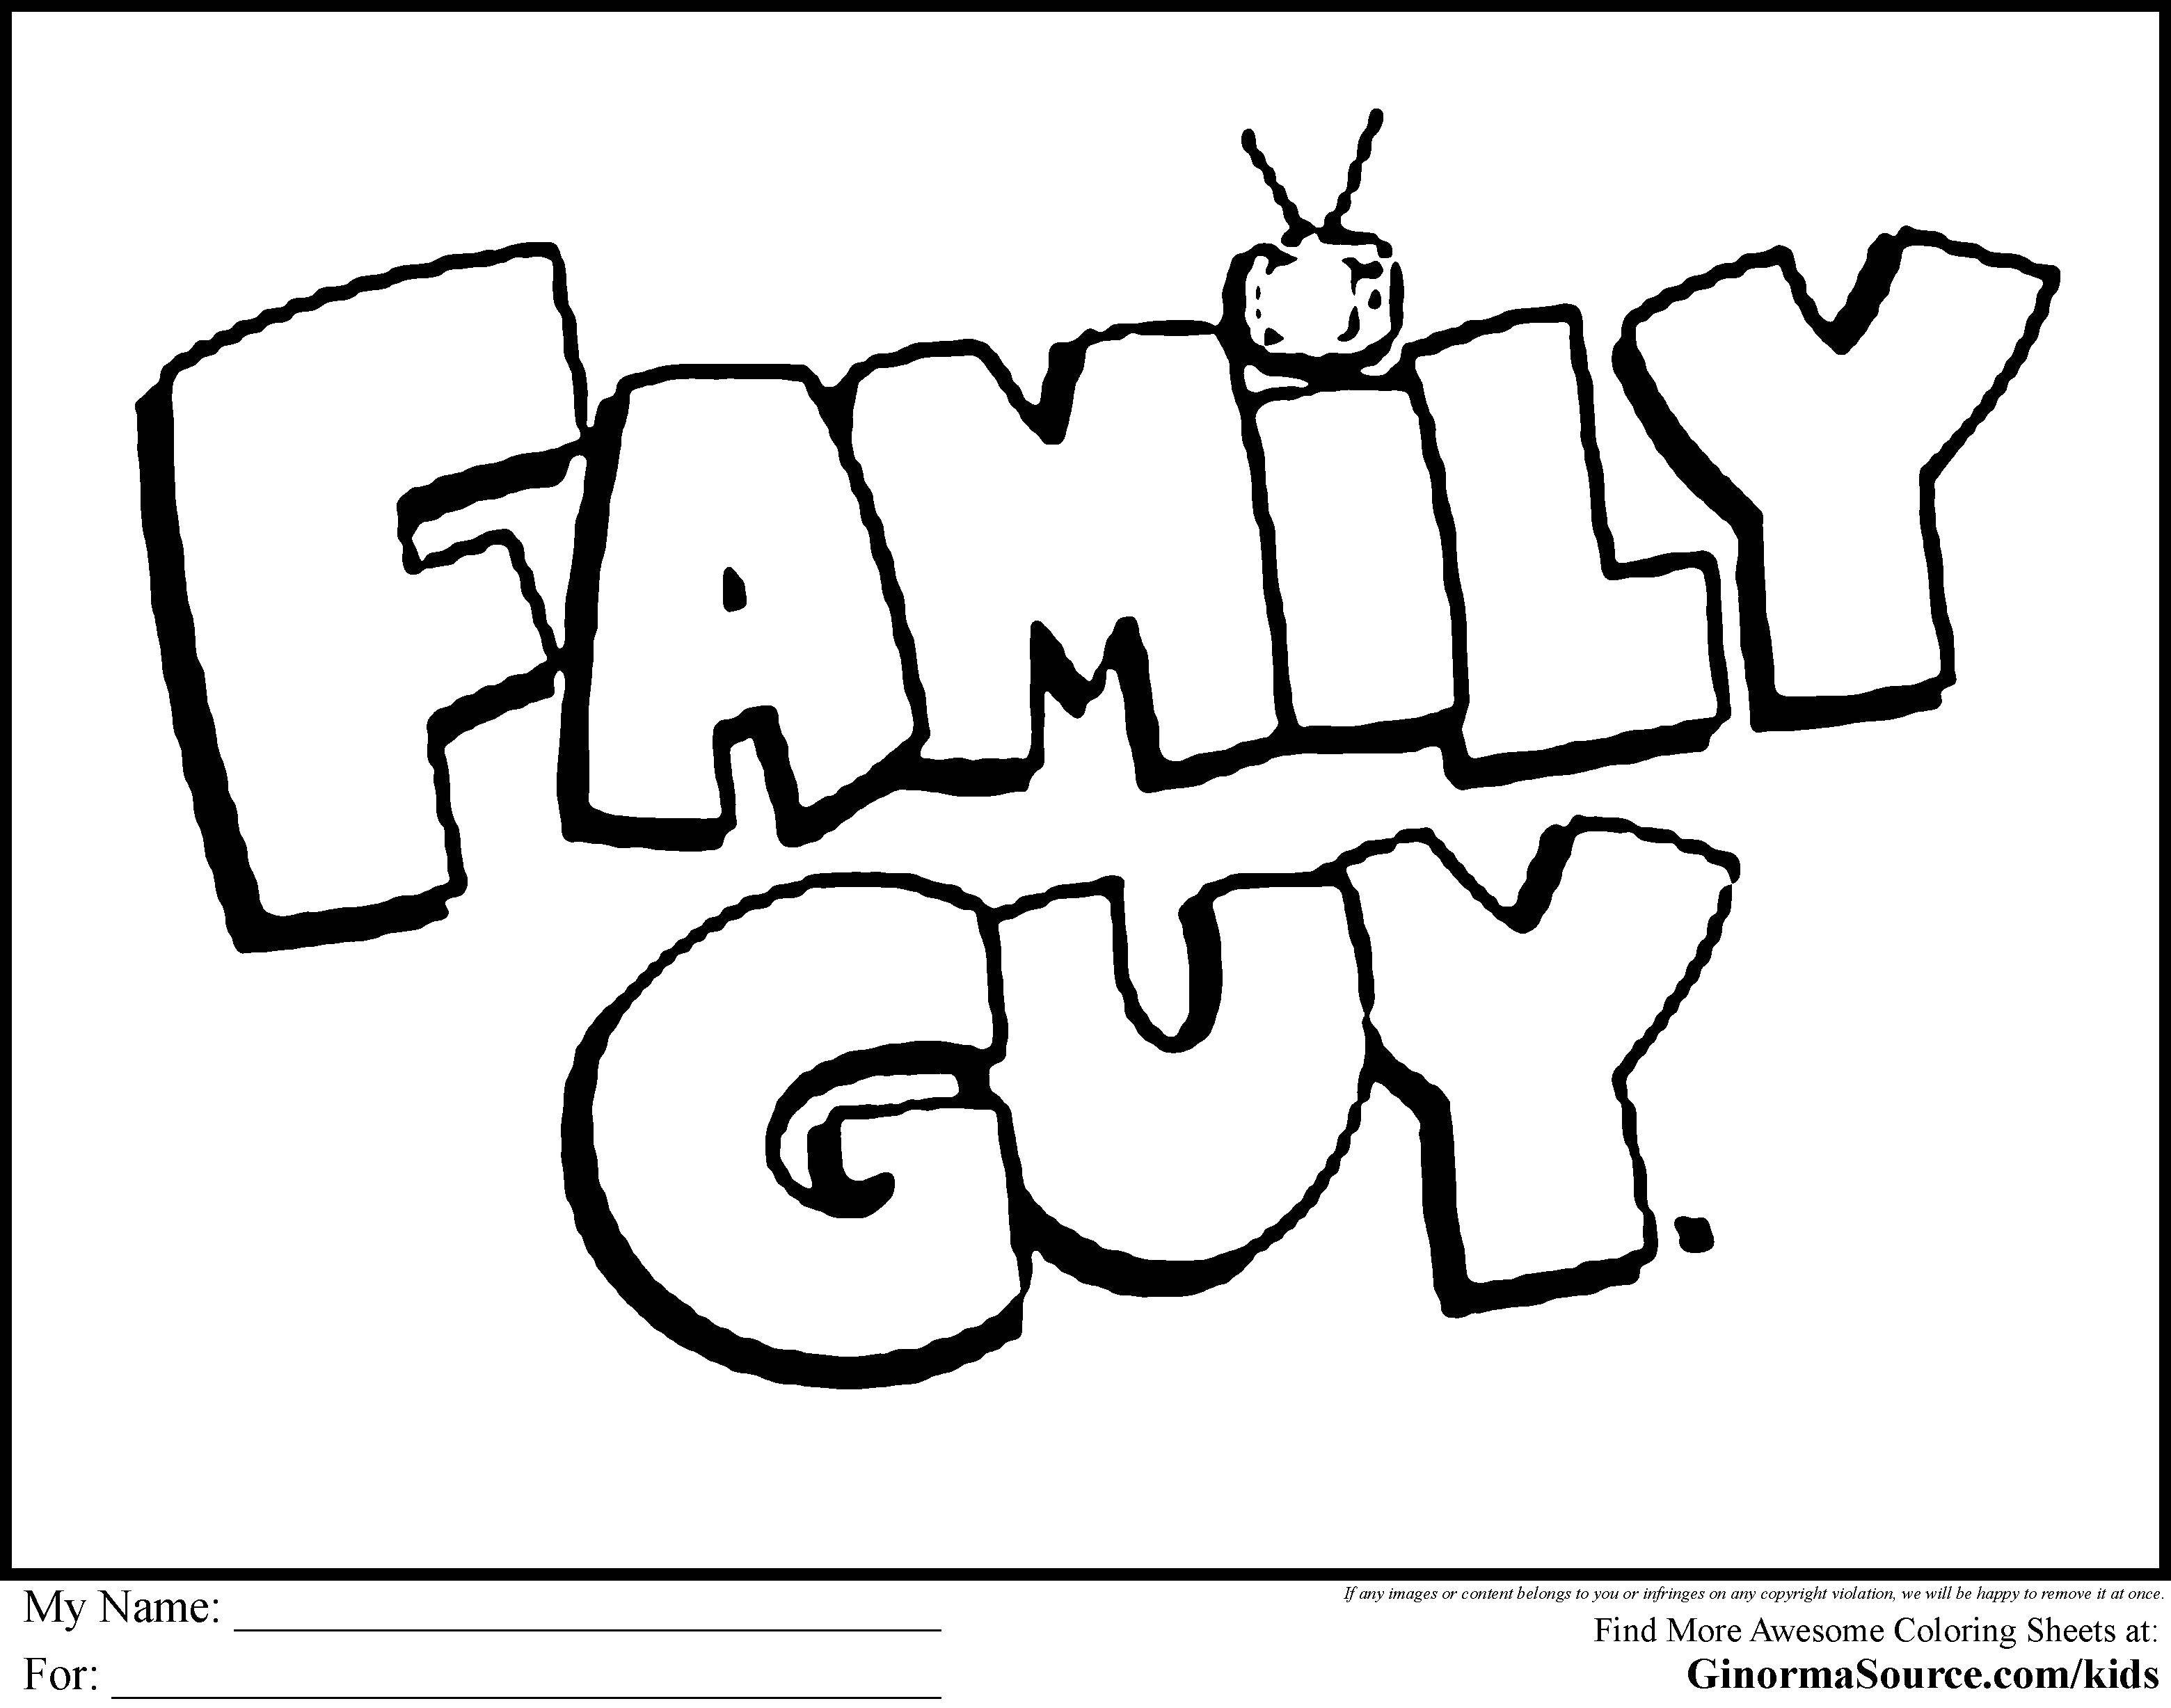 Family Guy Quagmire Coloring Pages Printable | 2455x3120